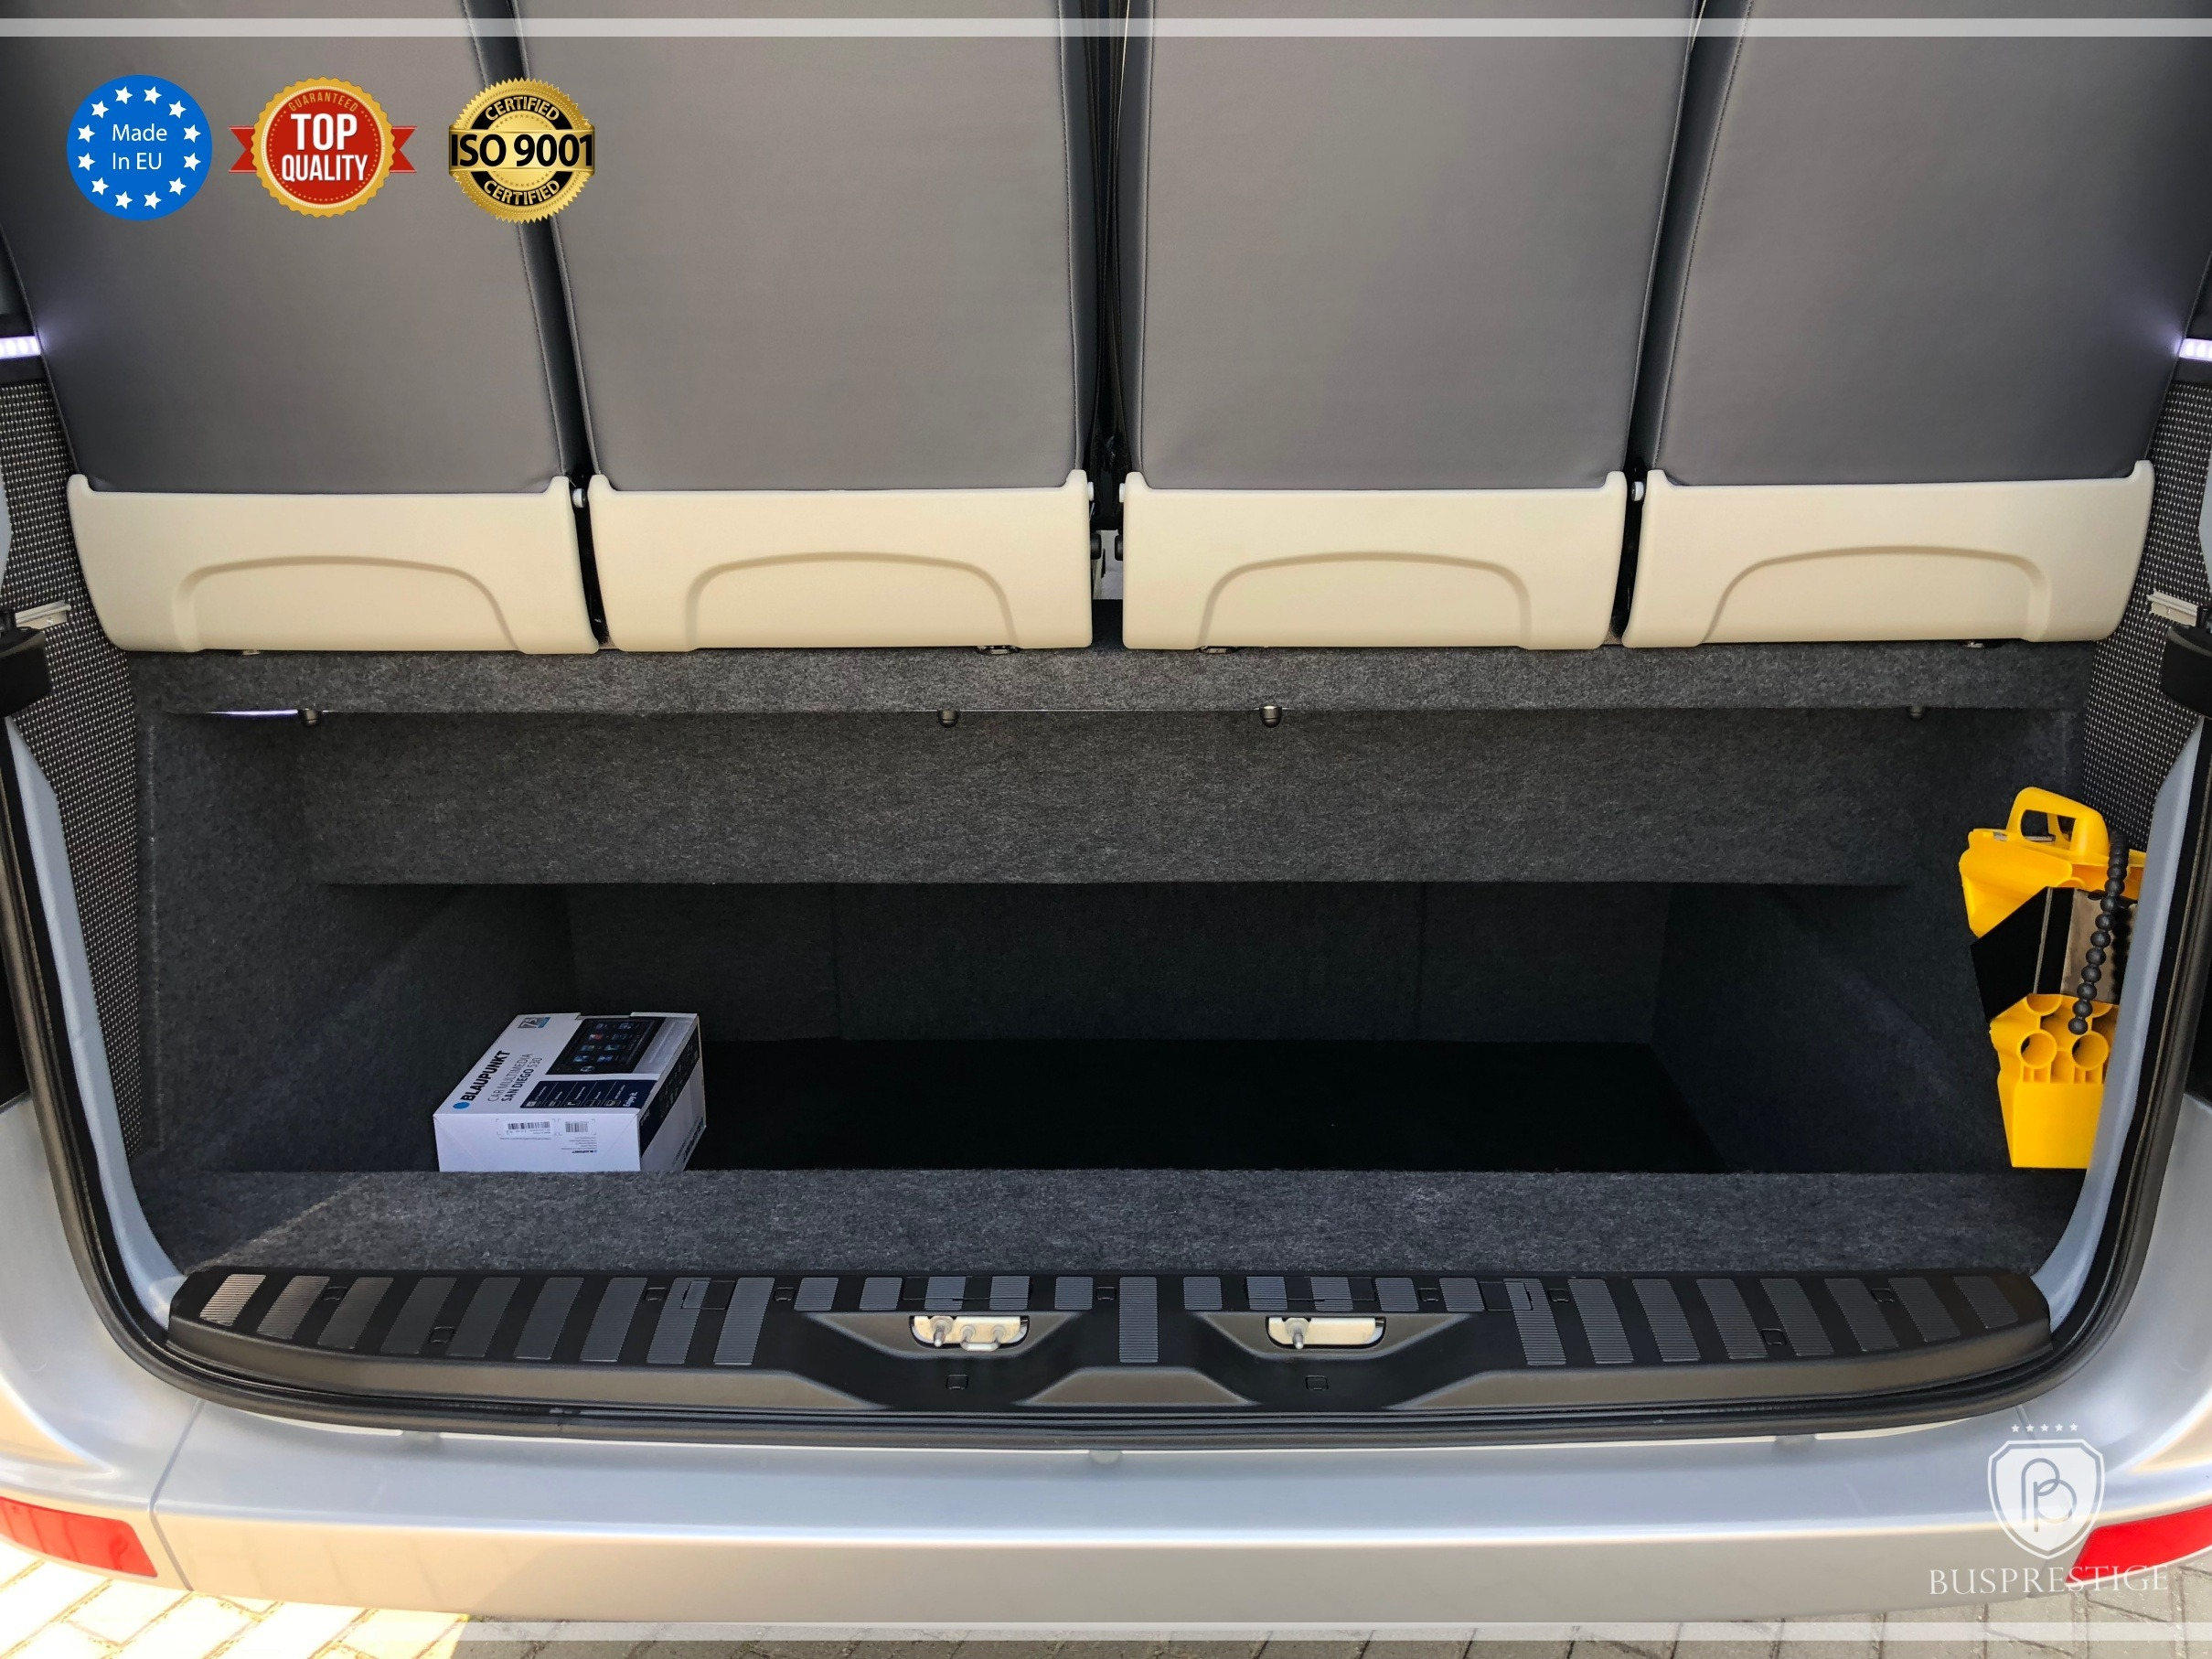 bus_prestige_sprinter_luggage_space